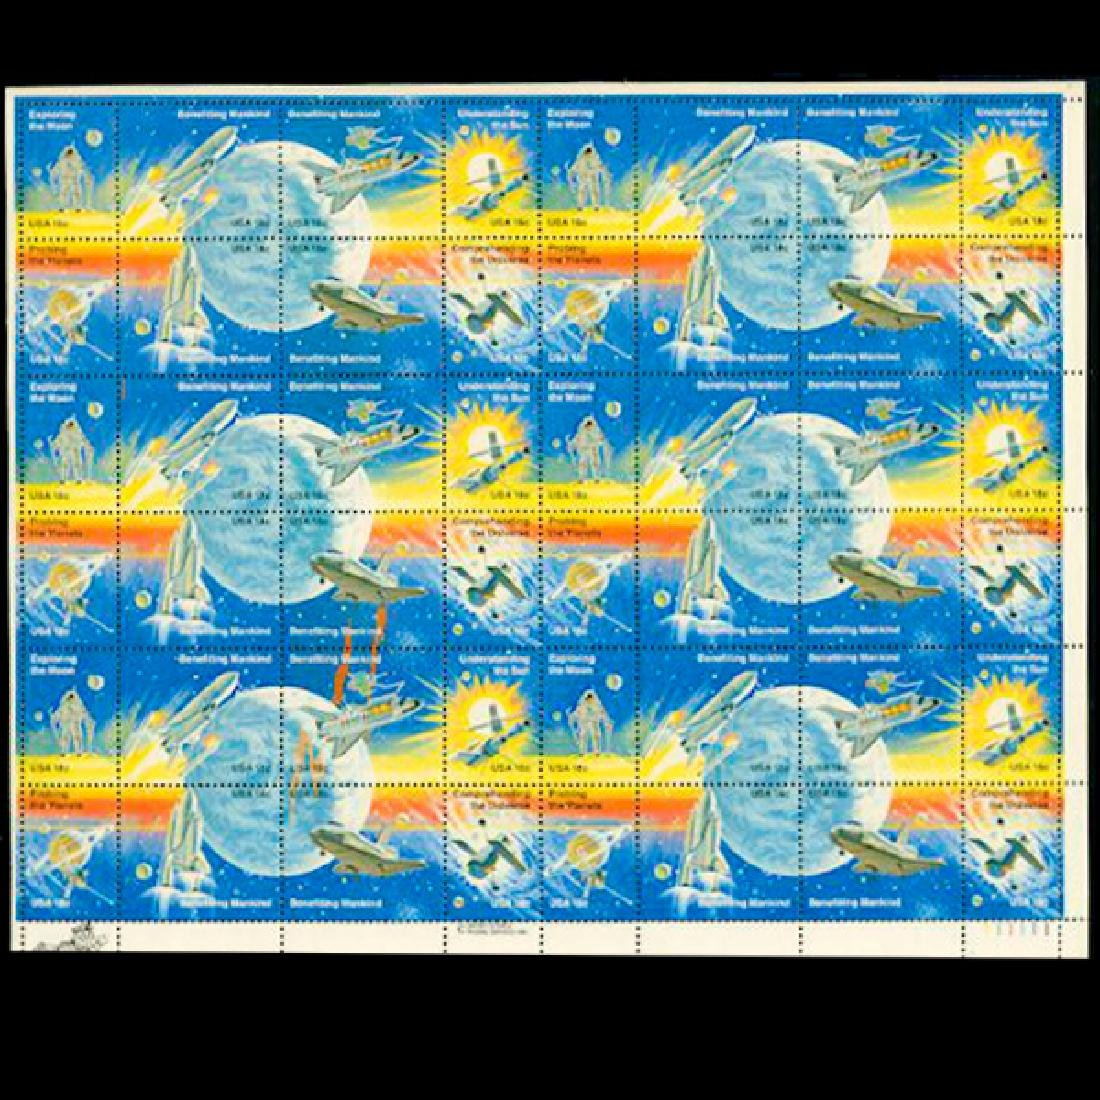 1981 US Sheet 18c Space Achievement Issue Stamps MNH